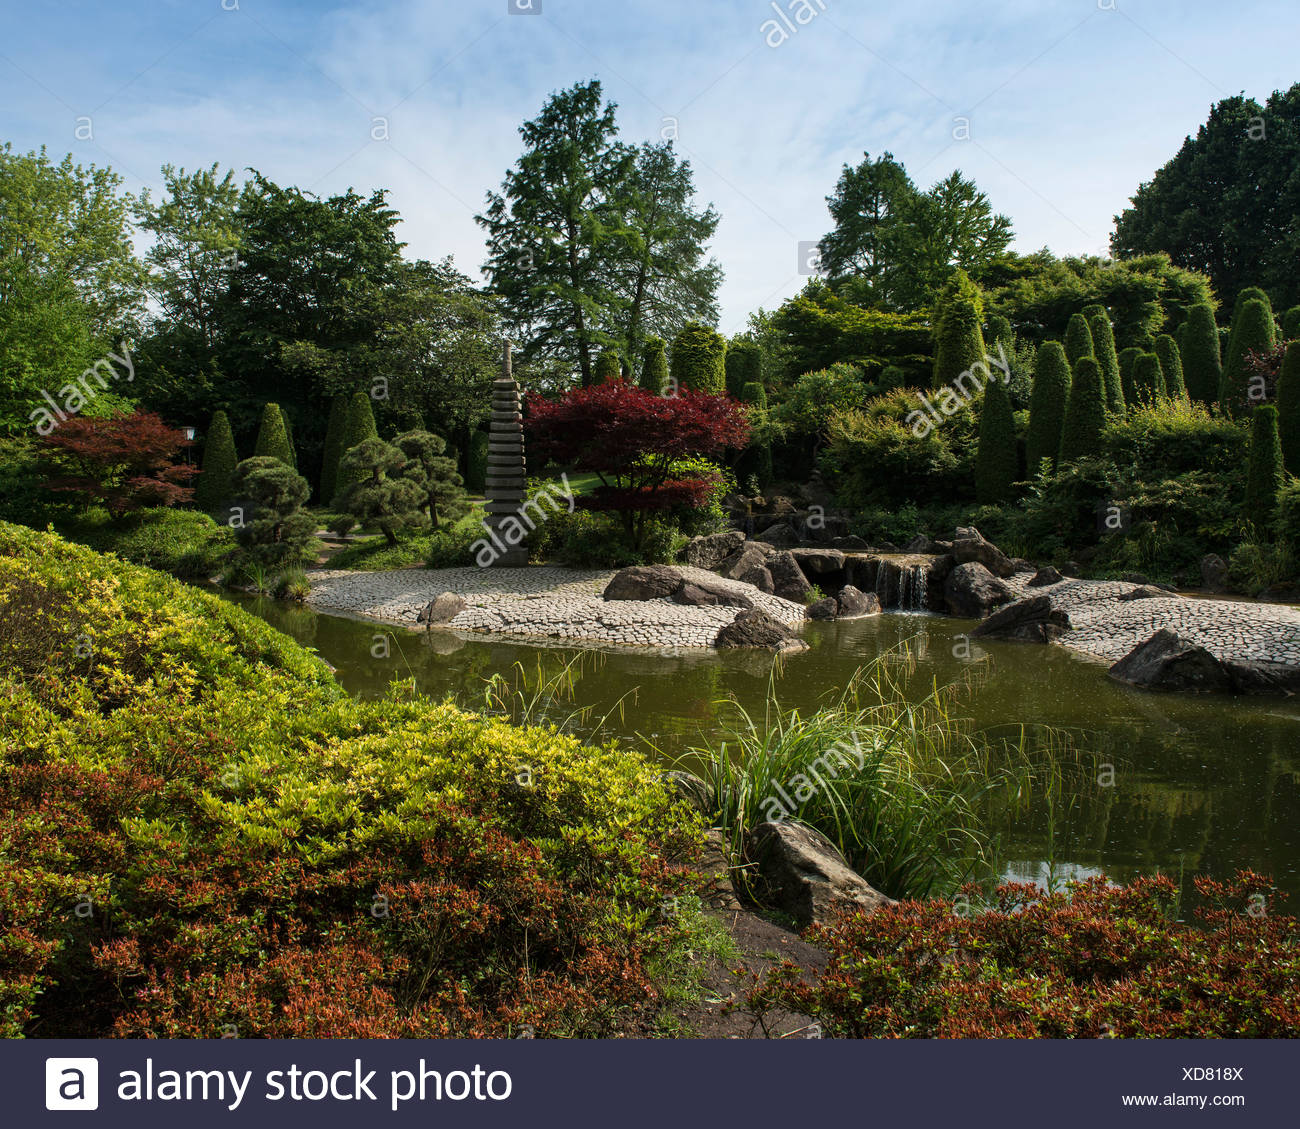 Japanese Garden in Bonn, North Rhine-Westphalia - Stock Image